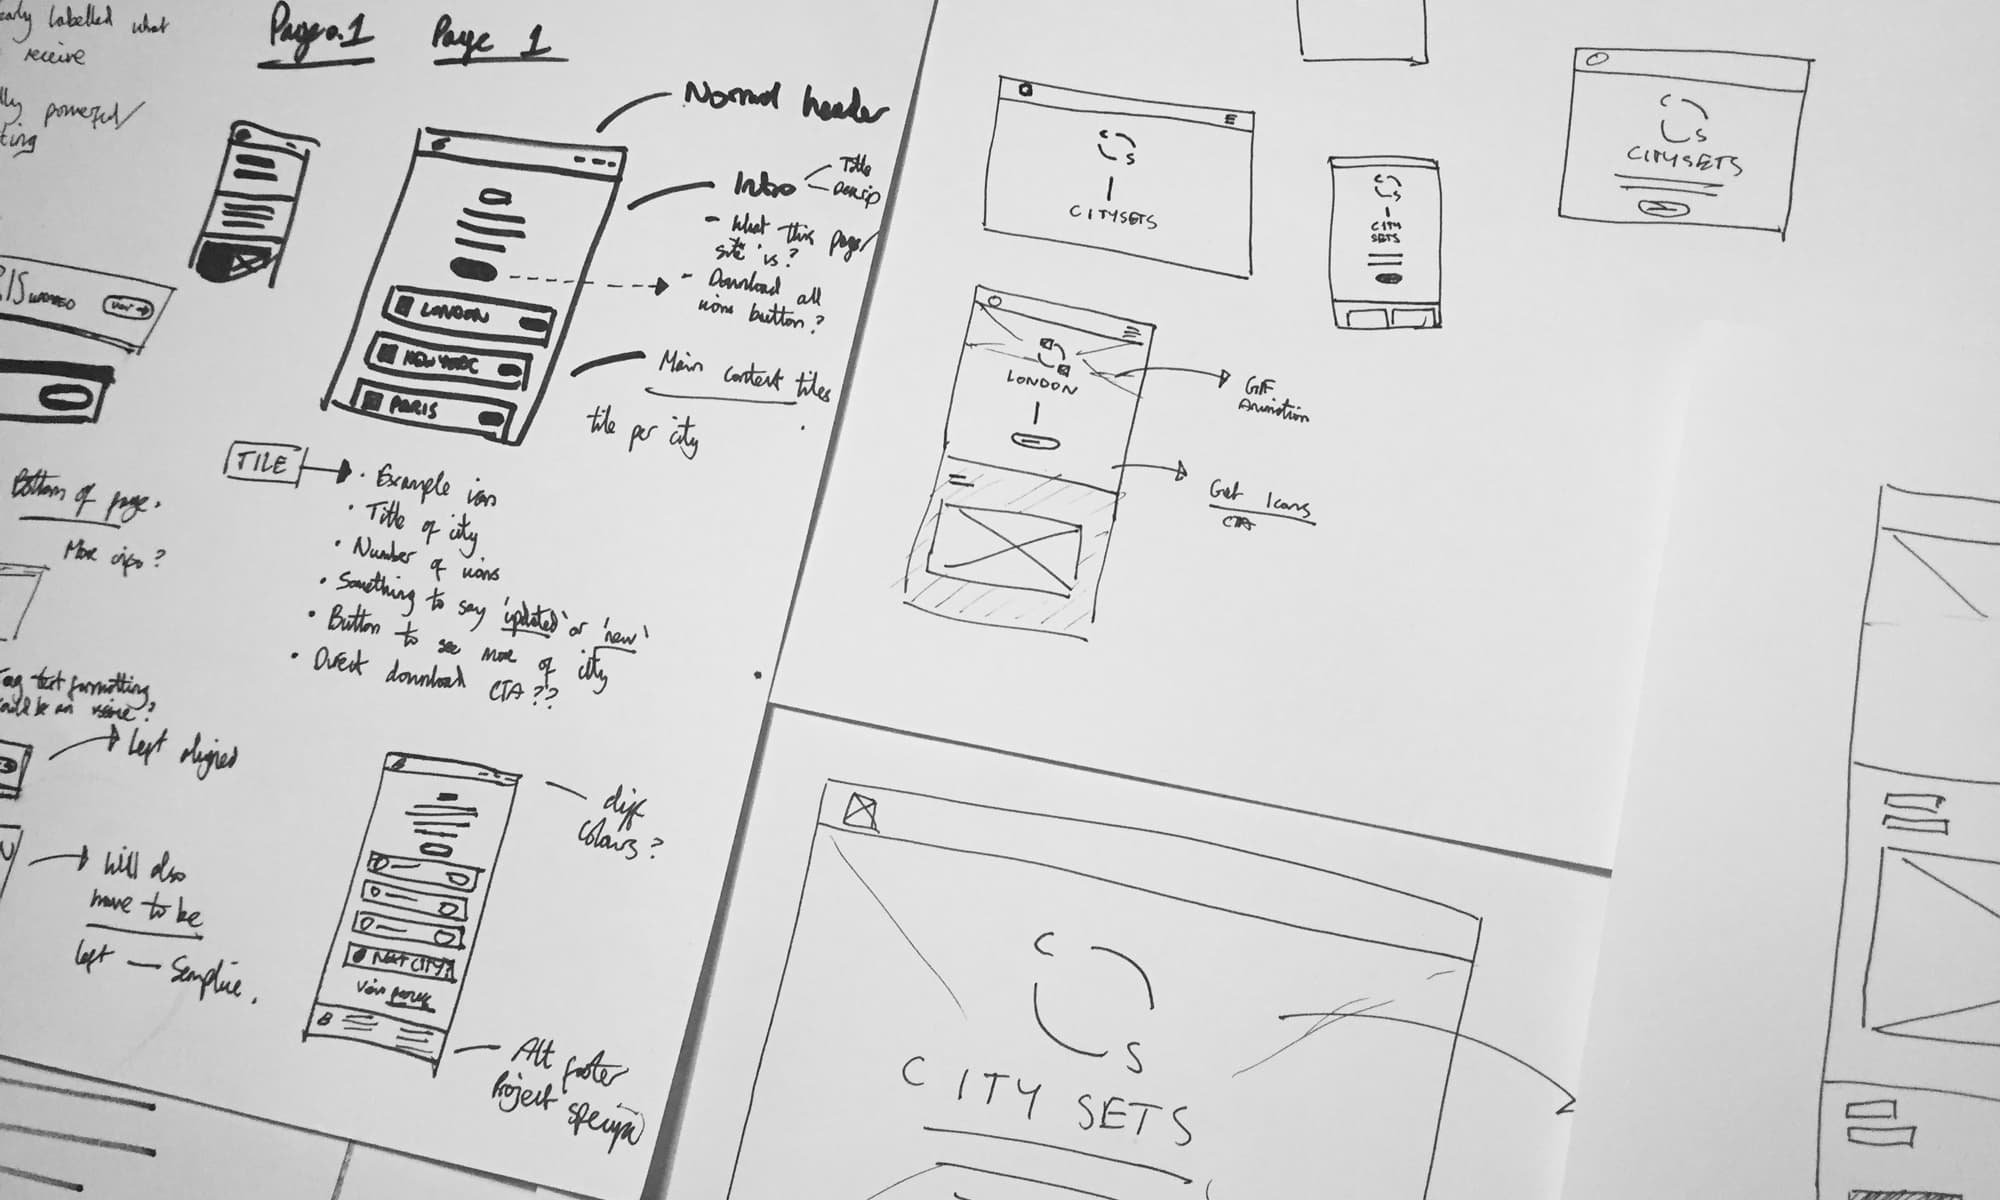 Initial sketching for the Citysets online experience